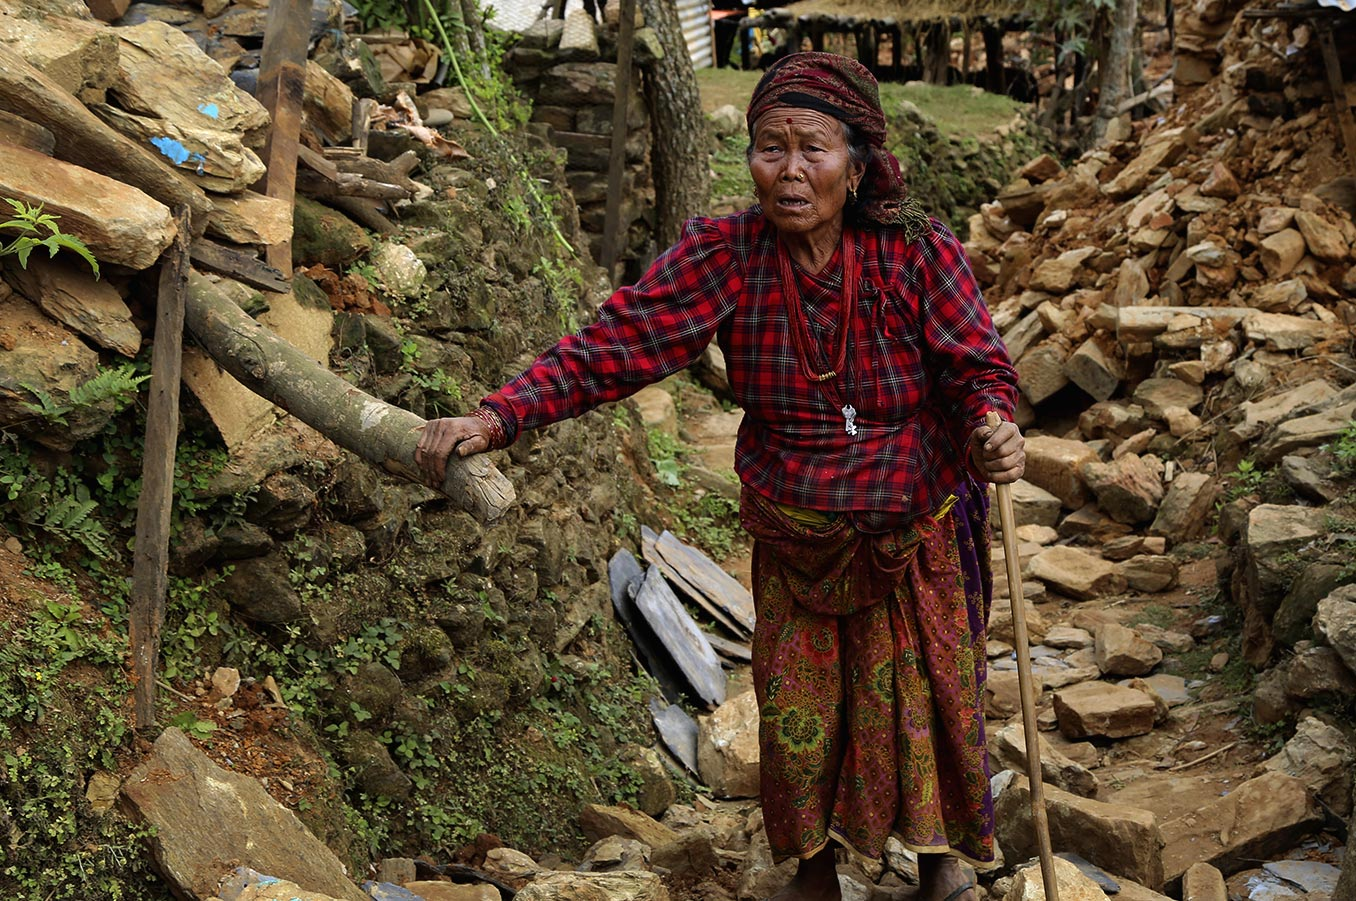 Woman in Nepal Earthquake rubble